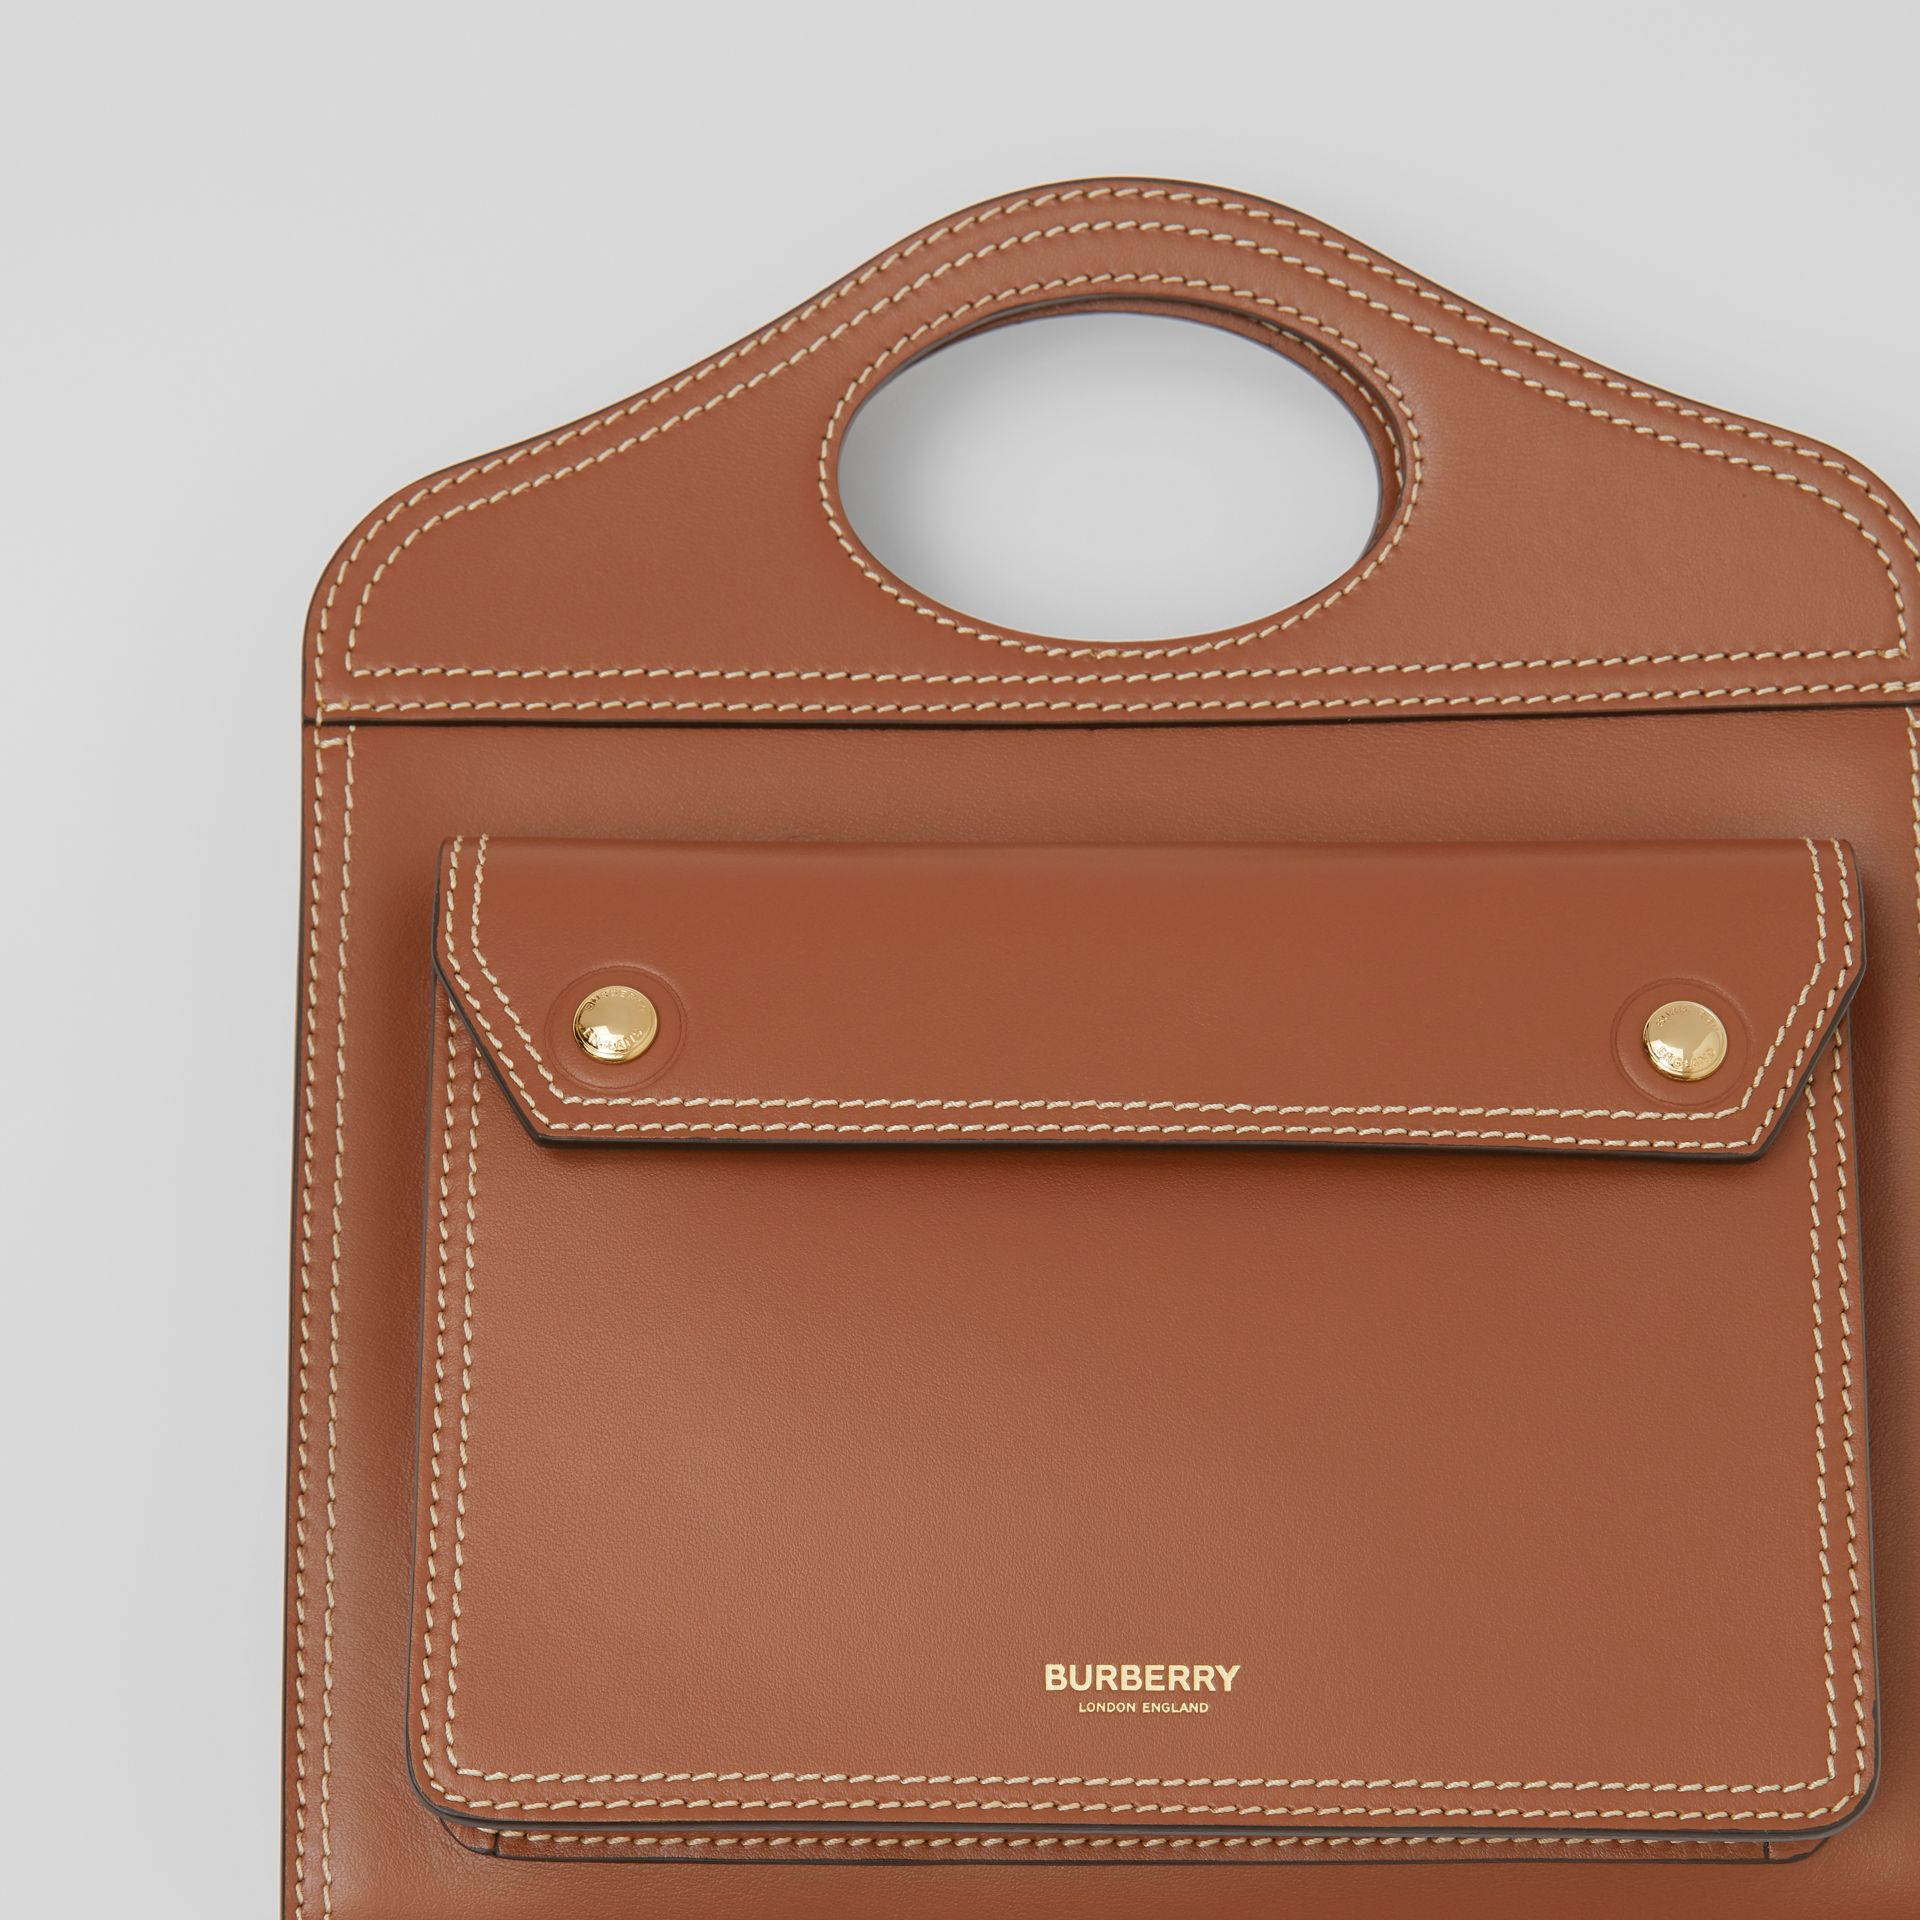 Mini Topstitched Leather Pocket Bag in Malt Brown - Women | Burberry - gallery image 1